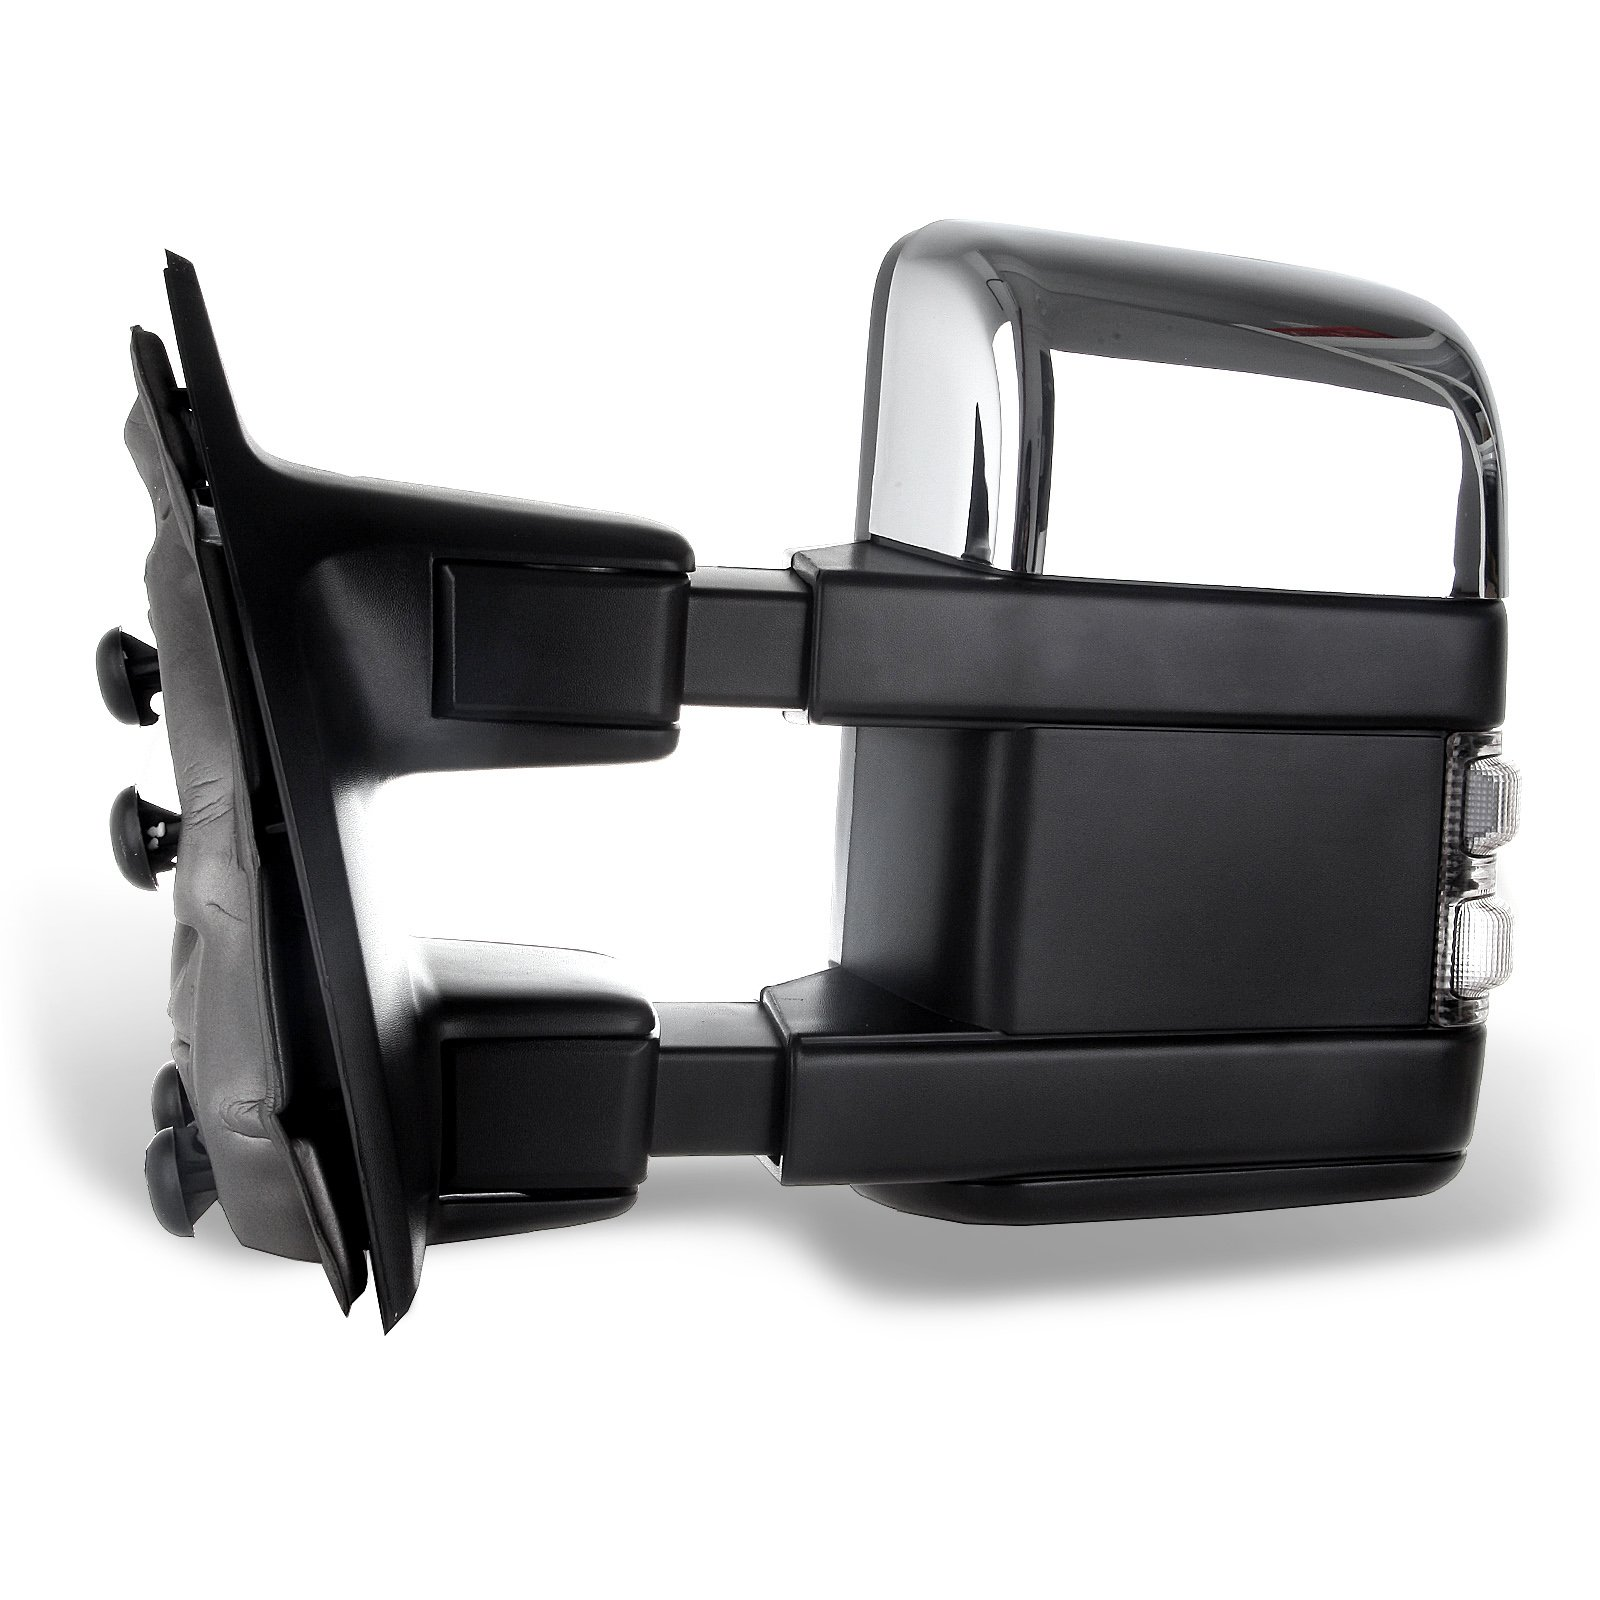 SCITOO fit Ford Towing Mirrors Chrome Rear View Mirrors fit 2008-2016 Ford F250 F350 F450 F550 Super Duty Truck Larger Glass Power Control, Heated Turn Signal Manual Extending Folding by SCITOO (Image #4)